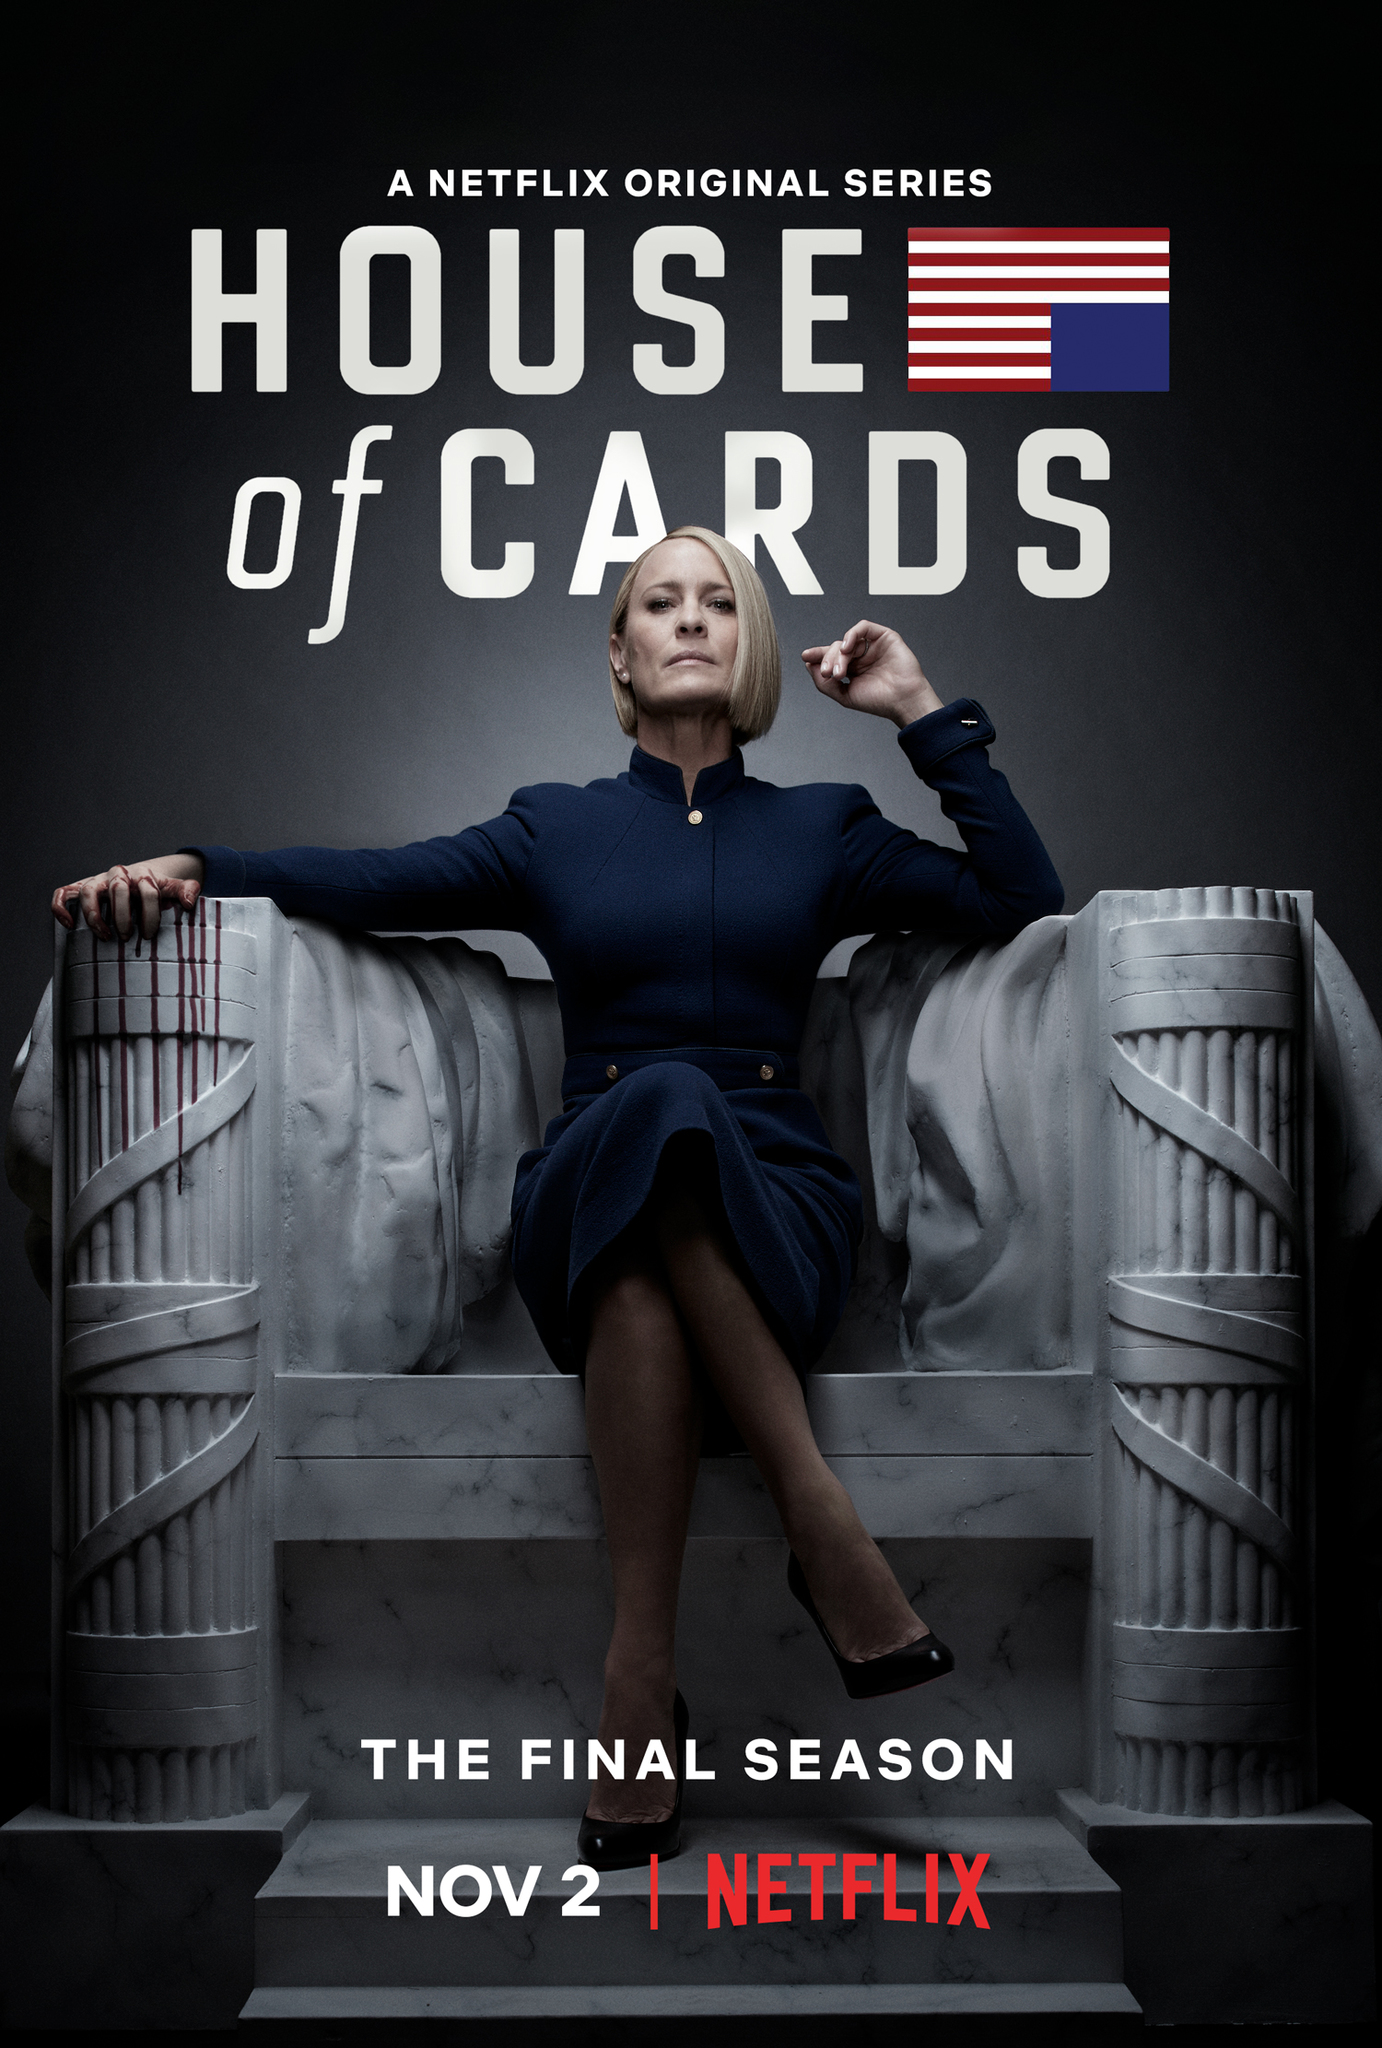 House Of Cards Netflix Series Fonts In Use